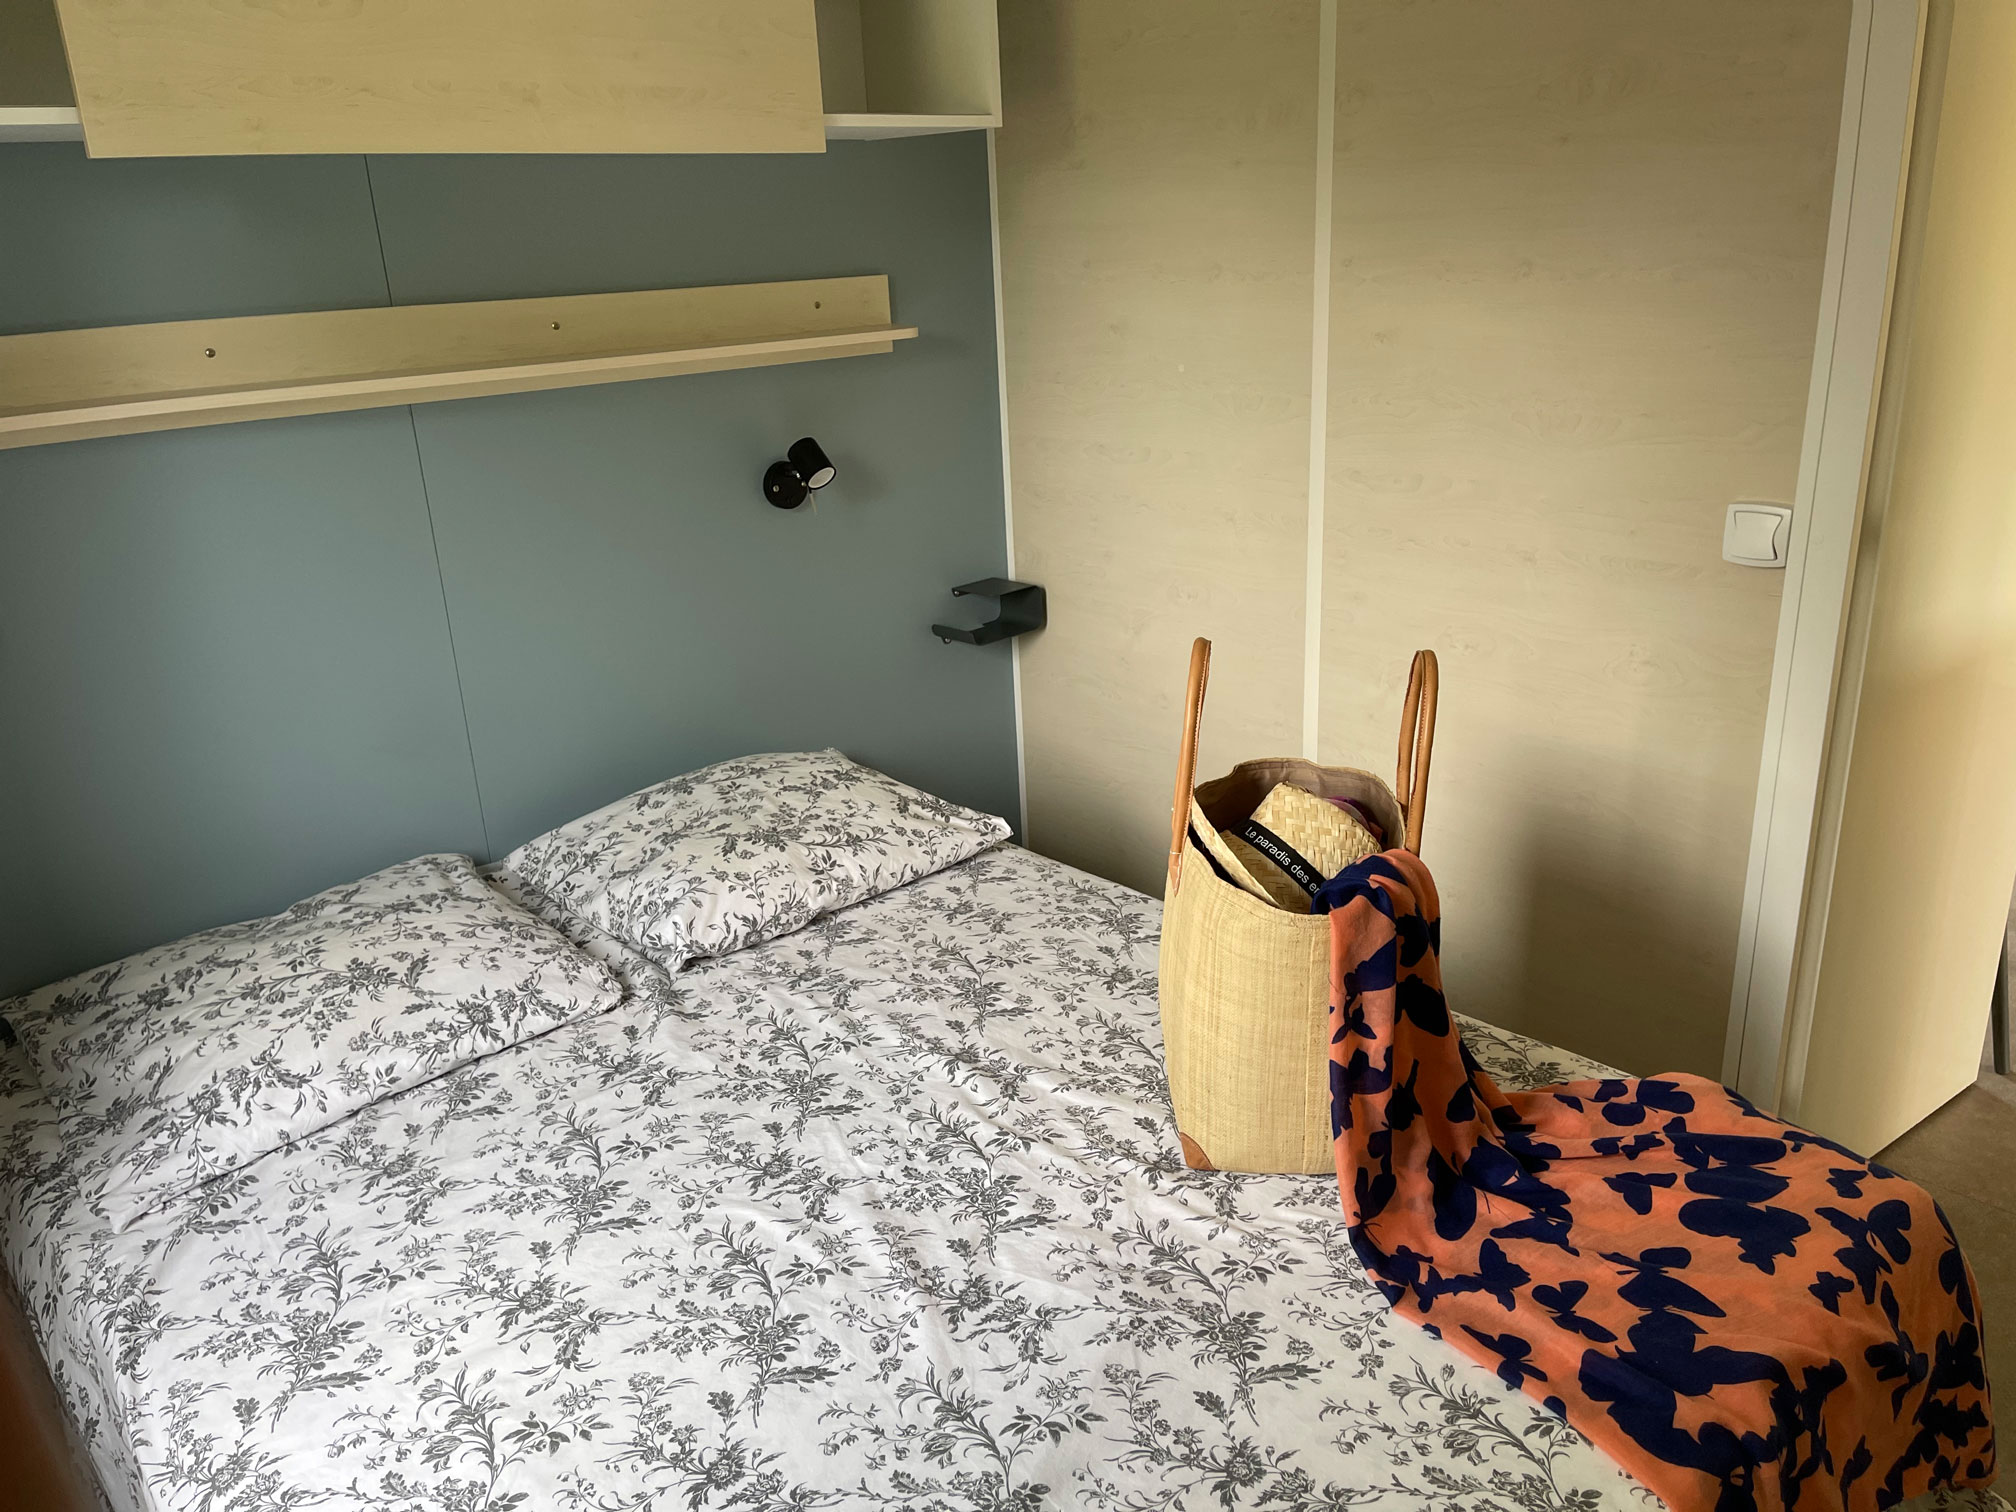 galerie-location-mobil-home-4-6-personnes-prestige-chambre-adultes-camping-moricq